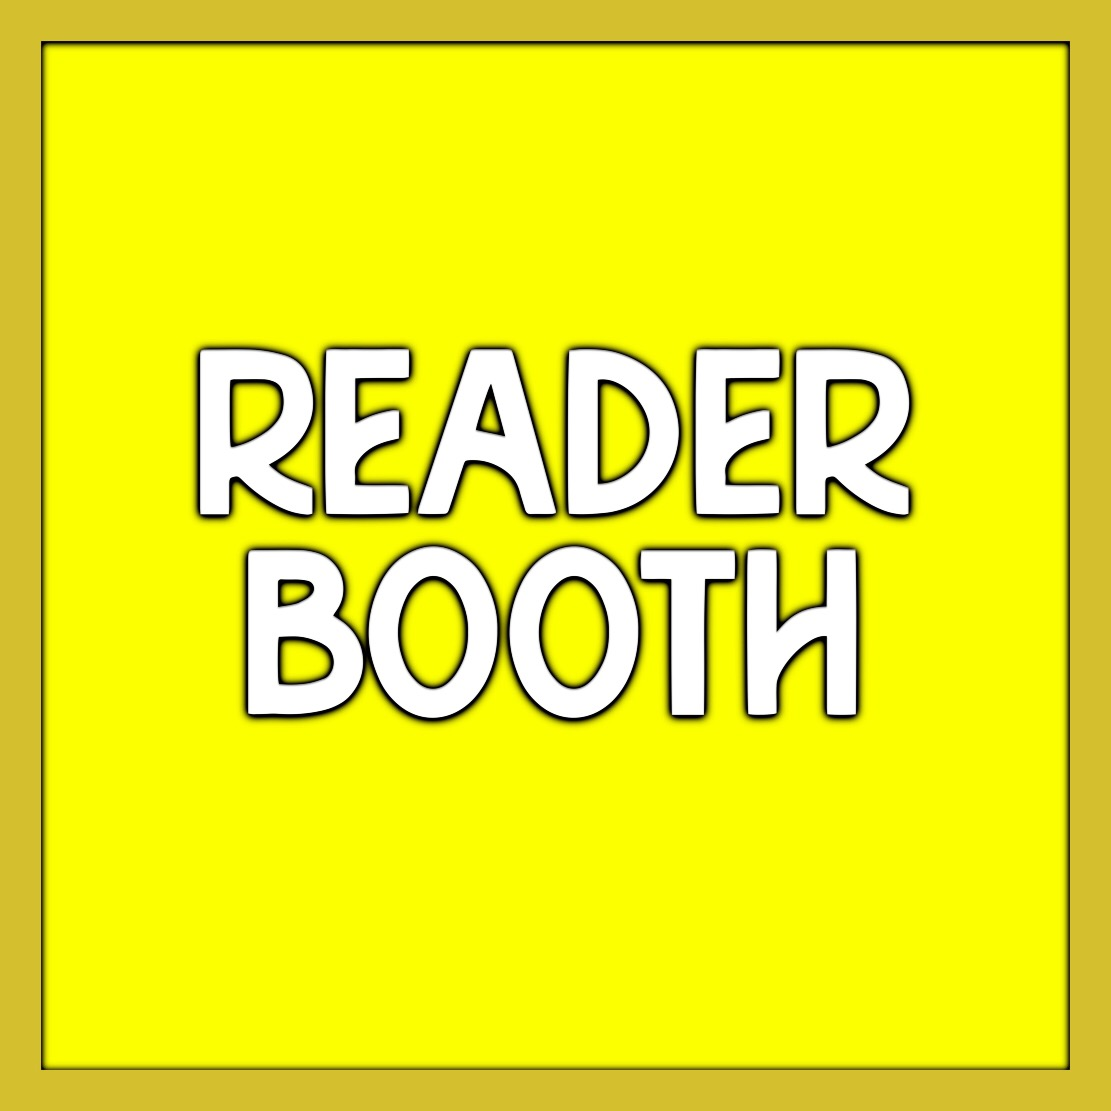 Maui Reader Booth